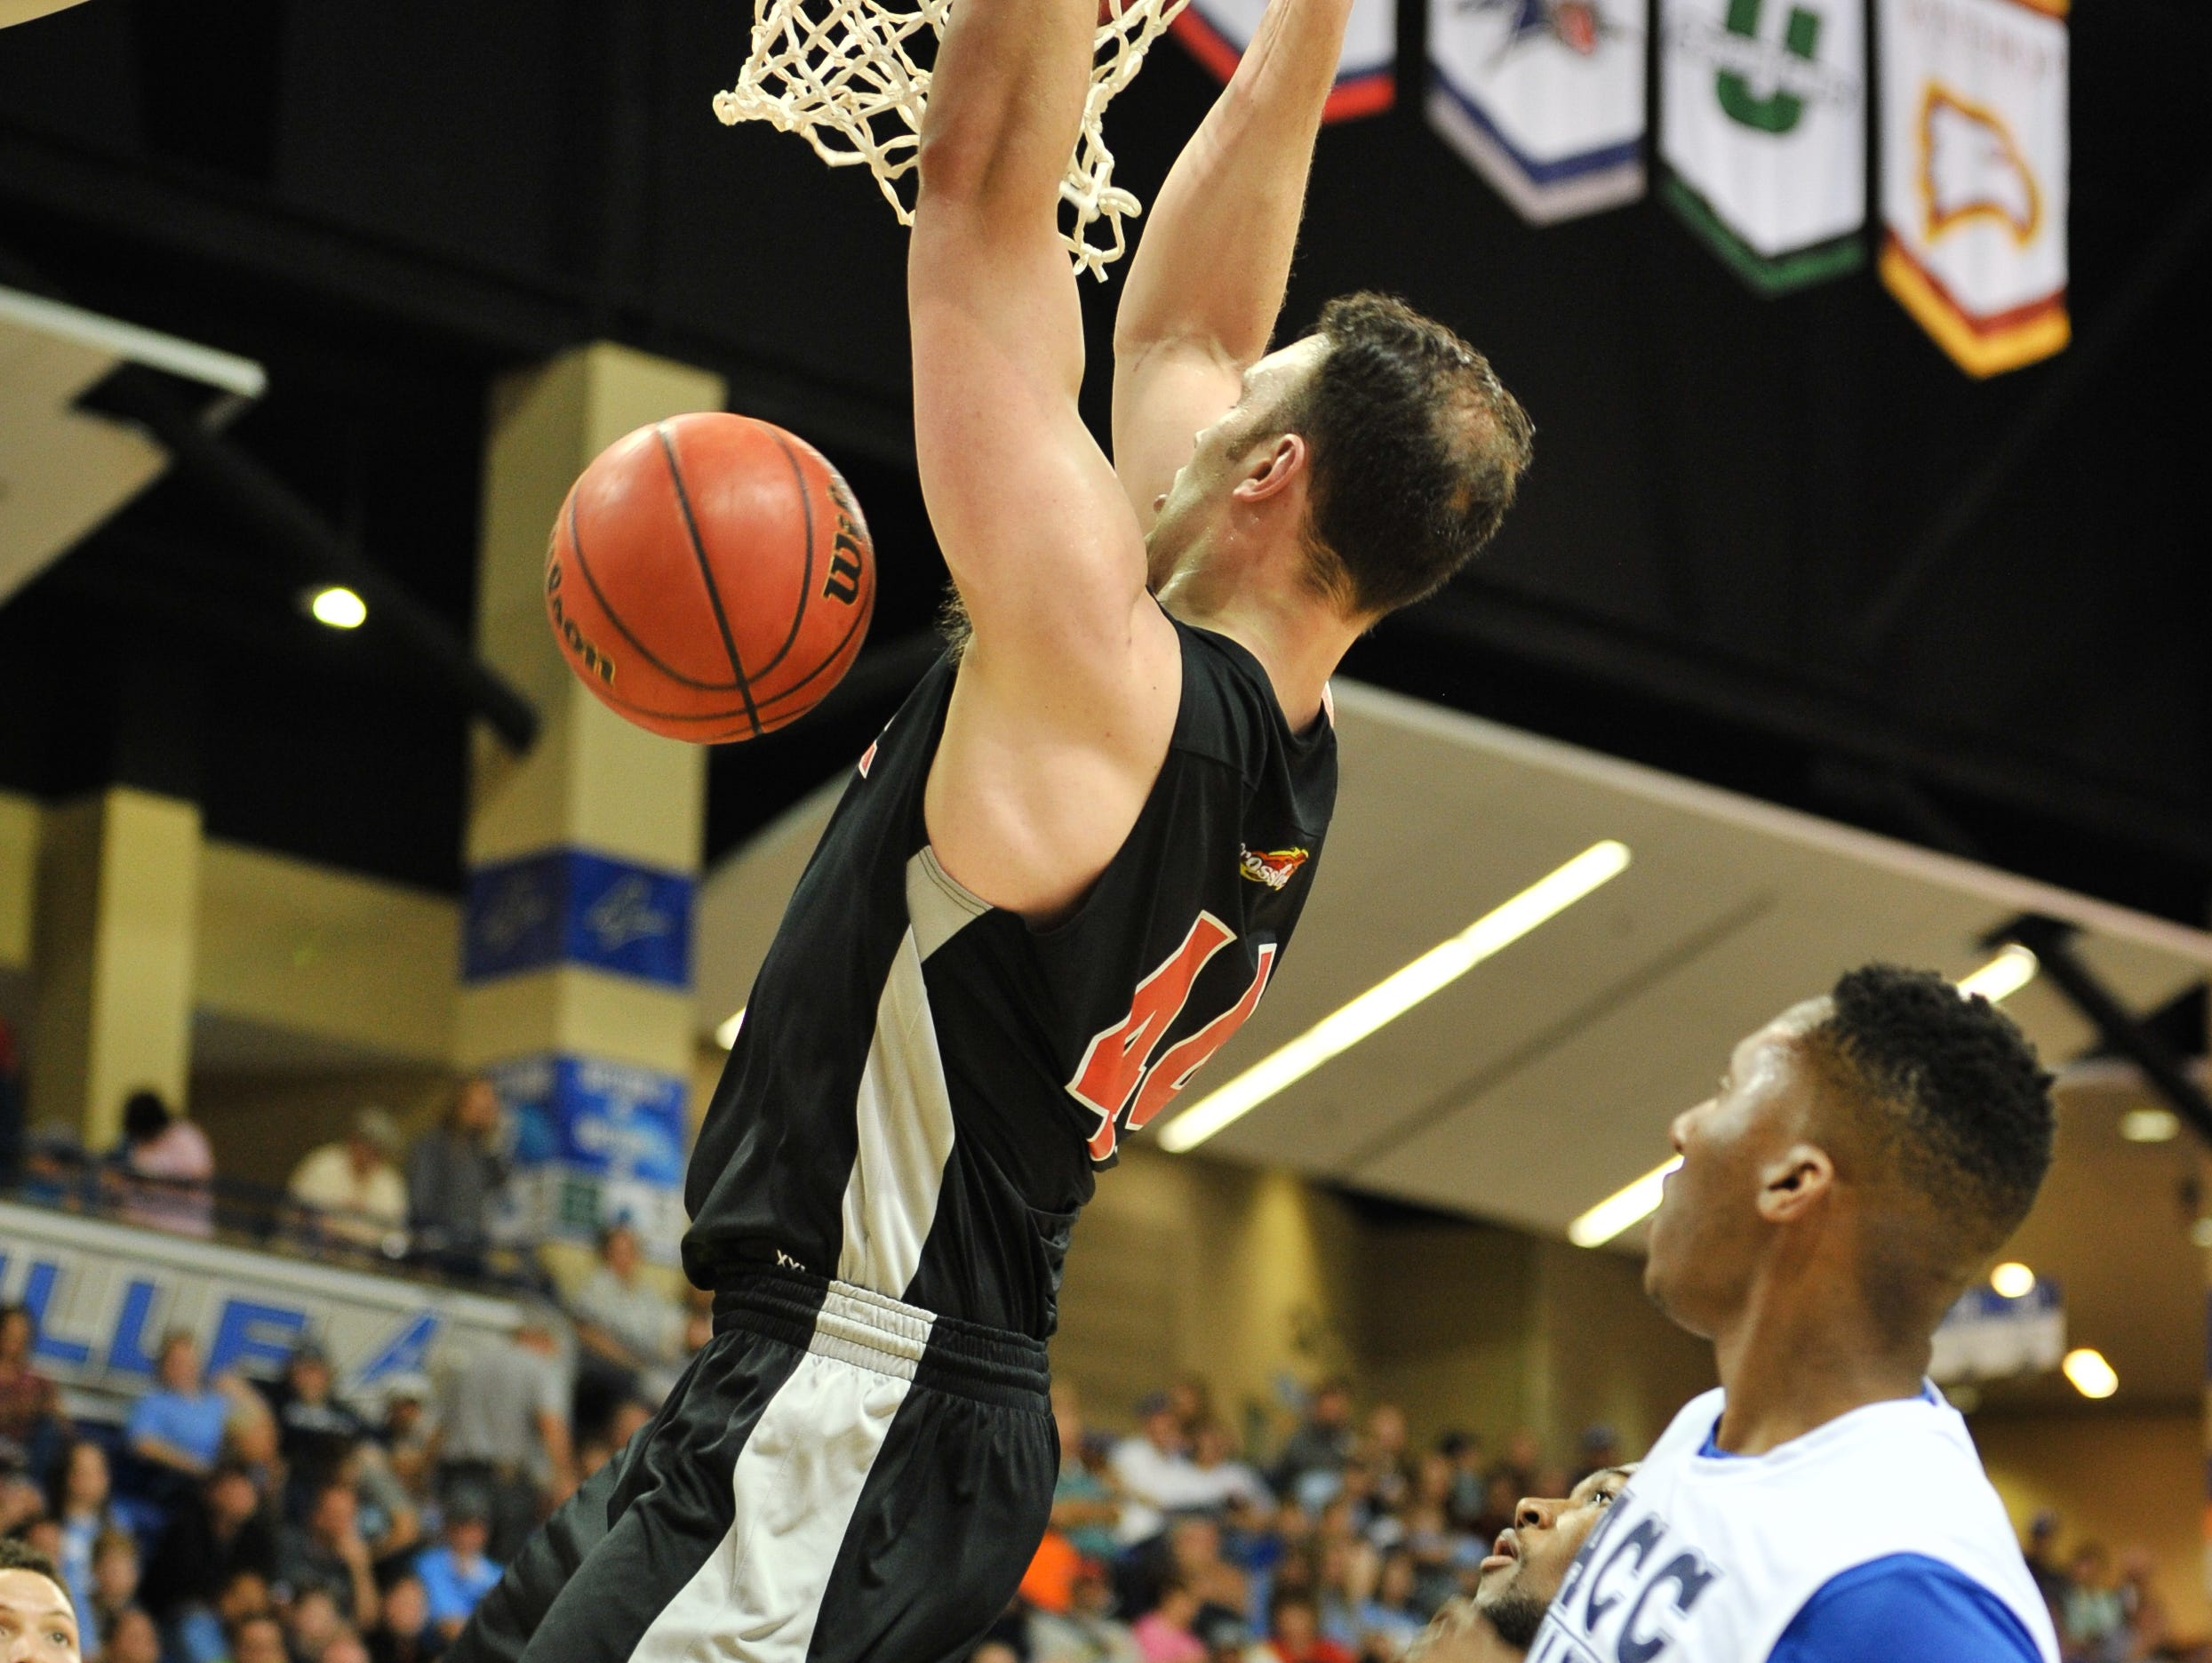 The annual Crossfire ACC All-Stars basketball game was April 14, 2019, at Kimmel Arena. The ACC defeated Crossfire, 113 - 110.